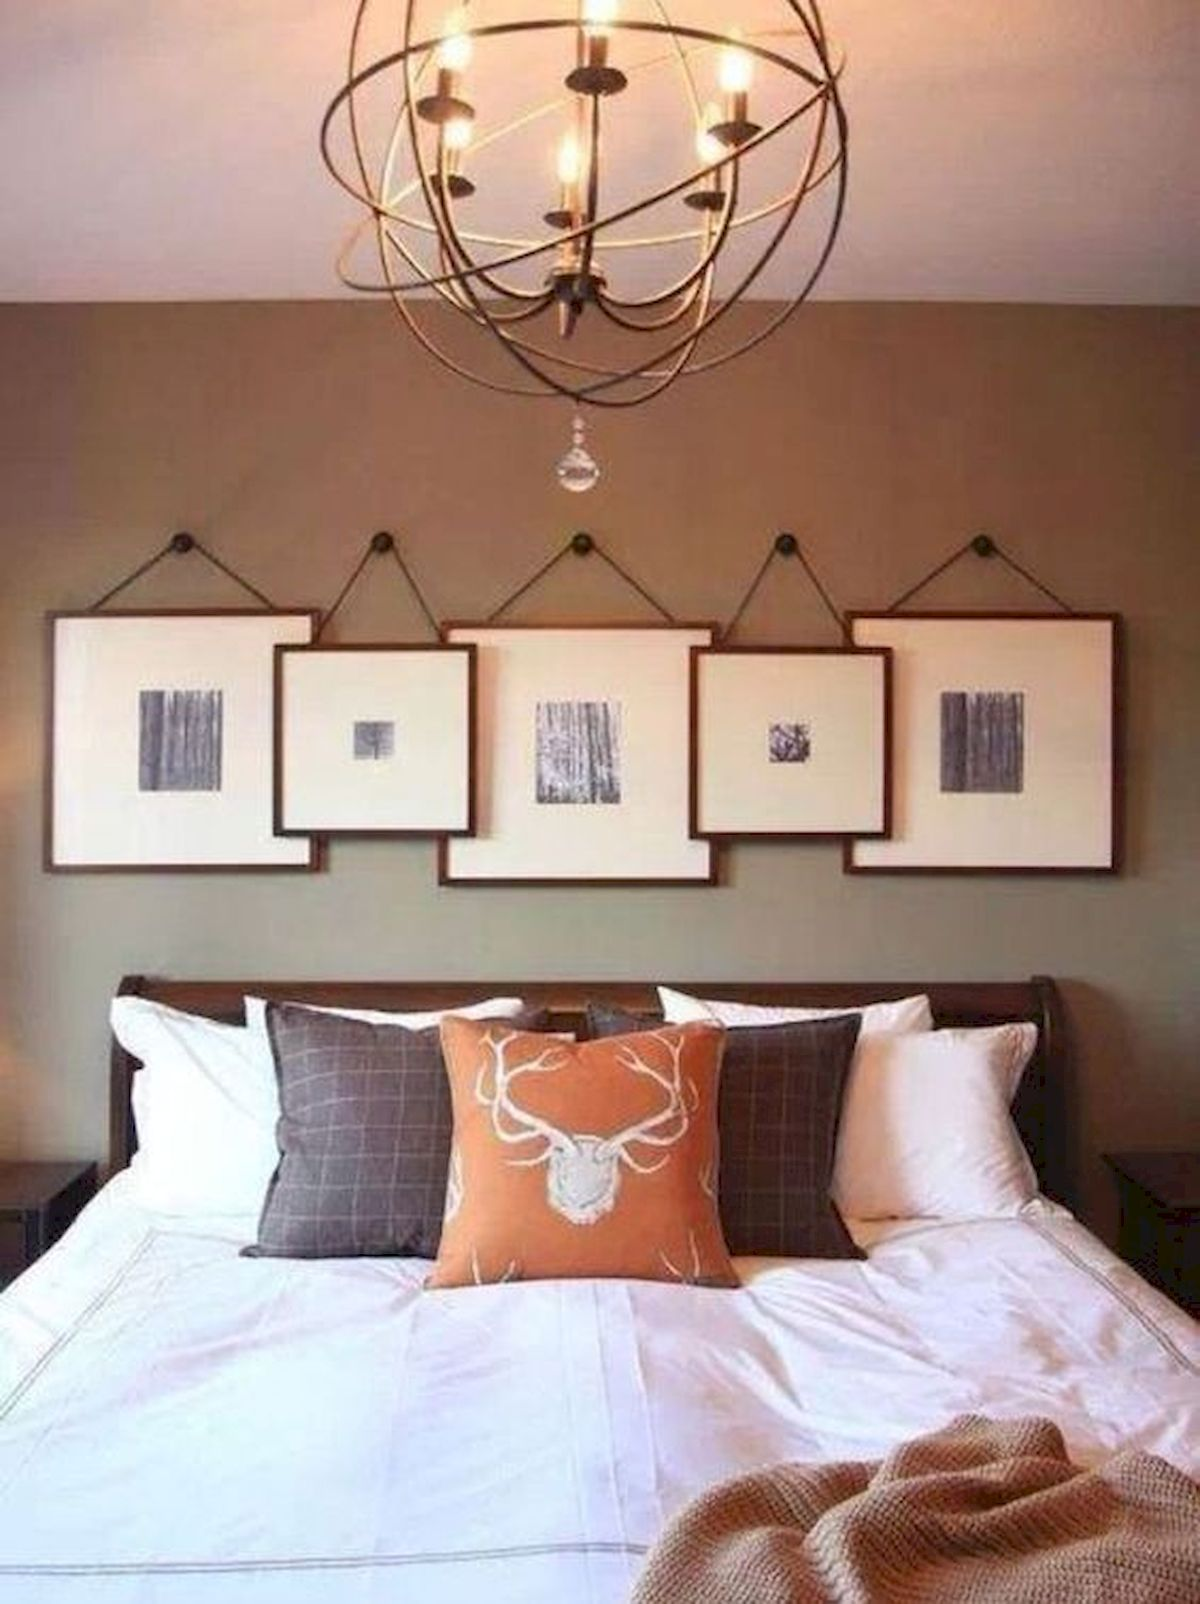 36 Creative DIY Wall Bedroom Decor Ideas That Unique And Beautiful (22)